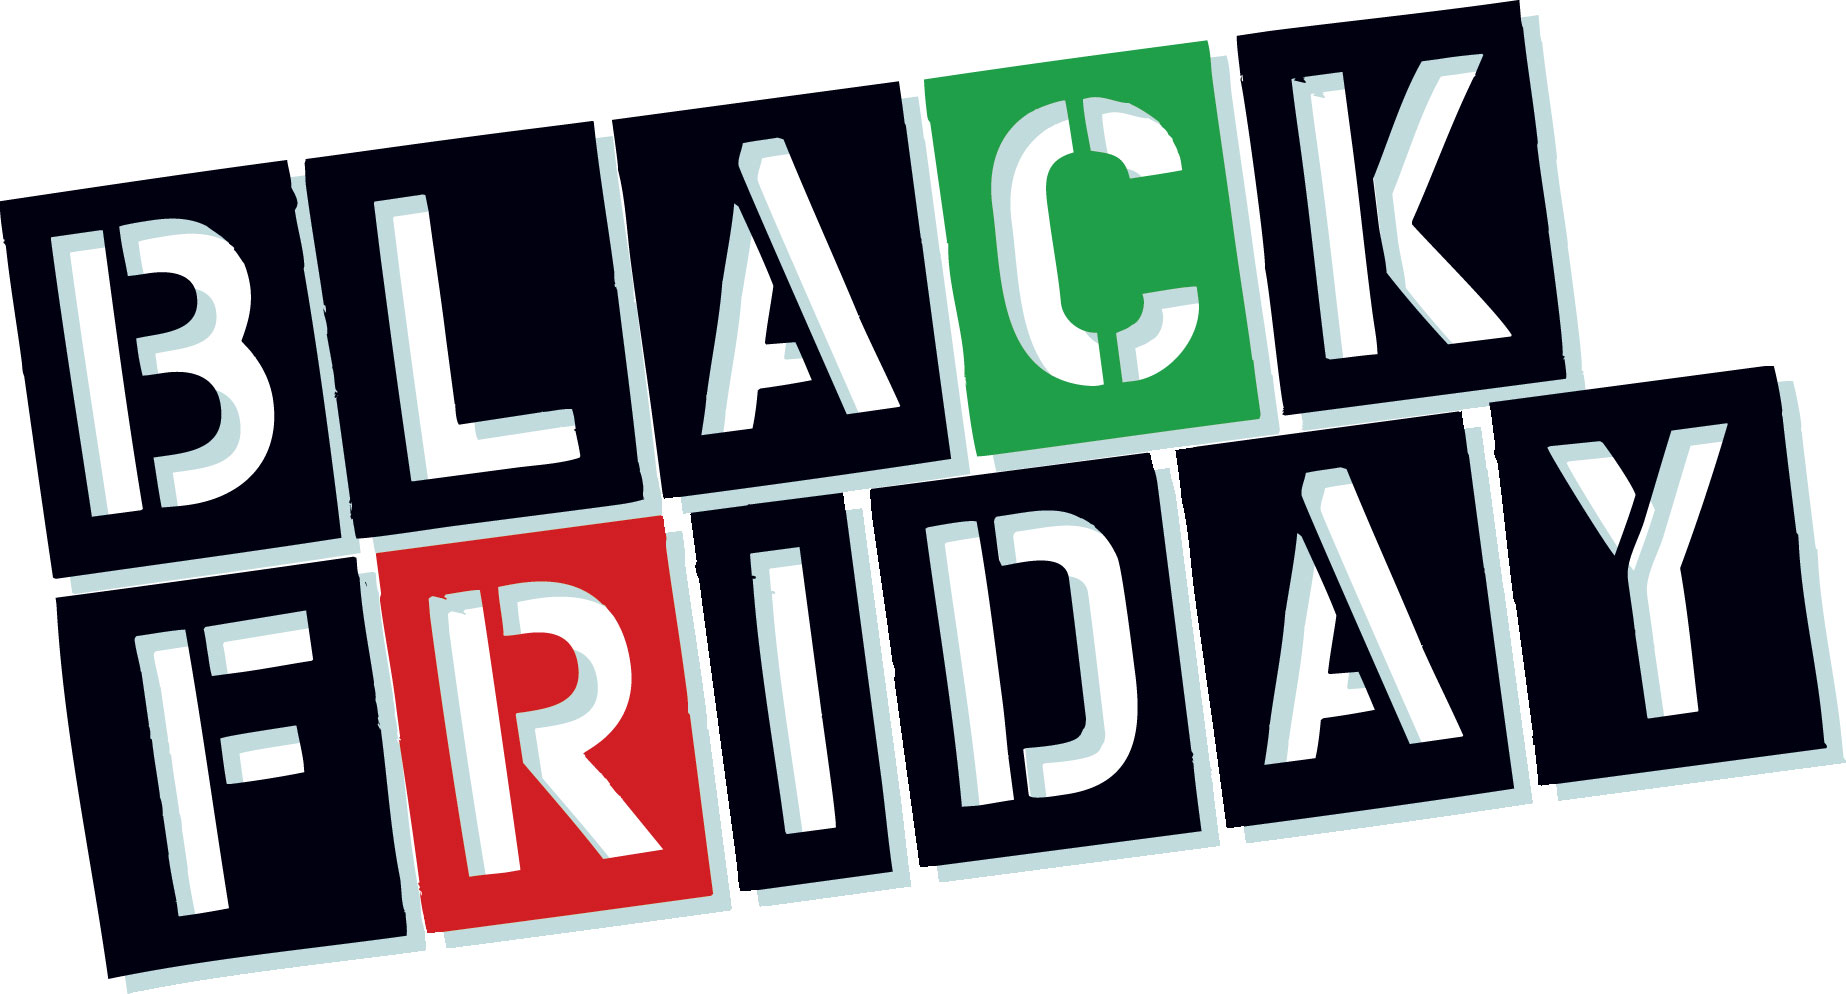 Black friday 2016 clipart svg free library Black Friday Clipart | Free download best Black Friday Clipart on ... svg free library